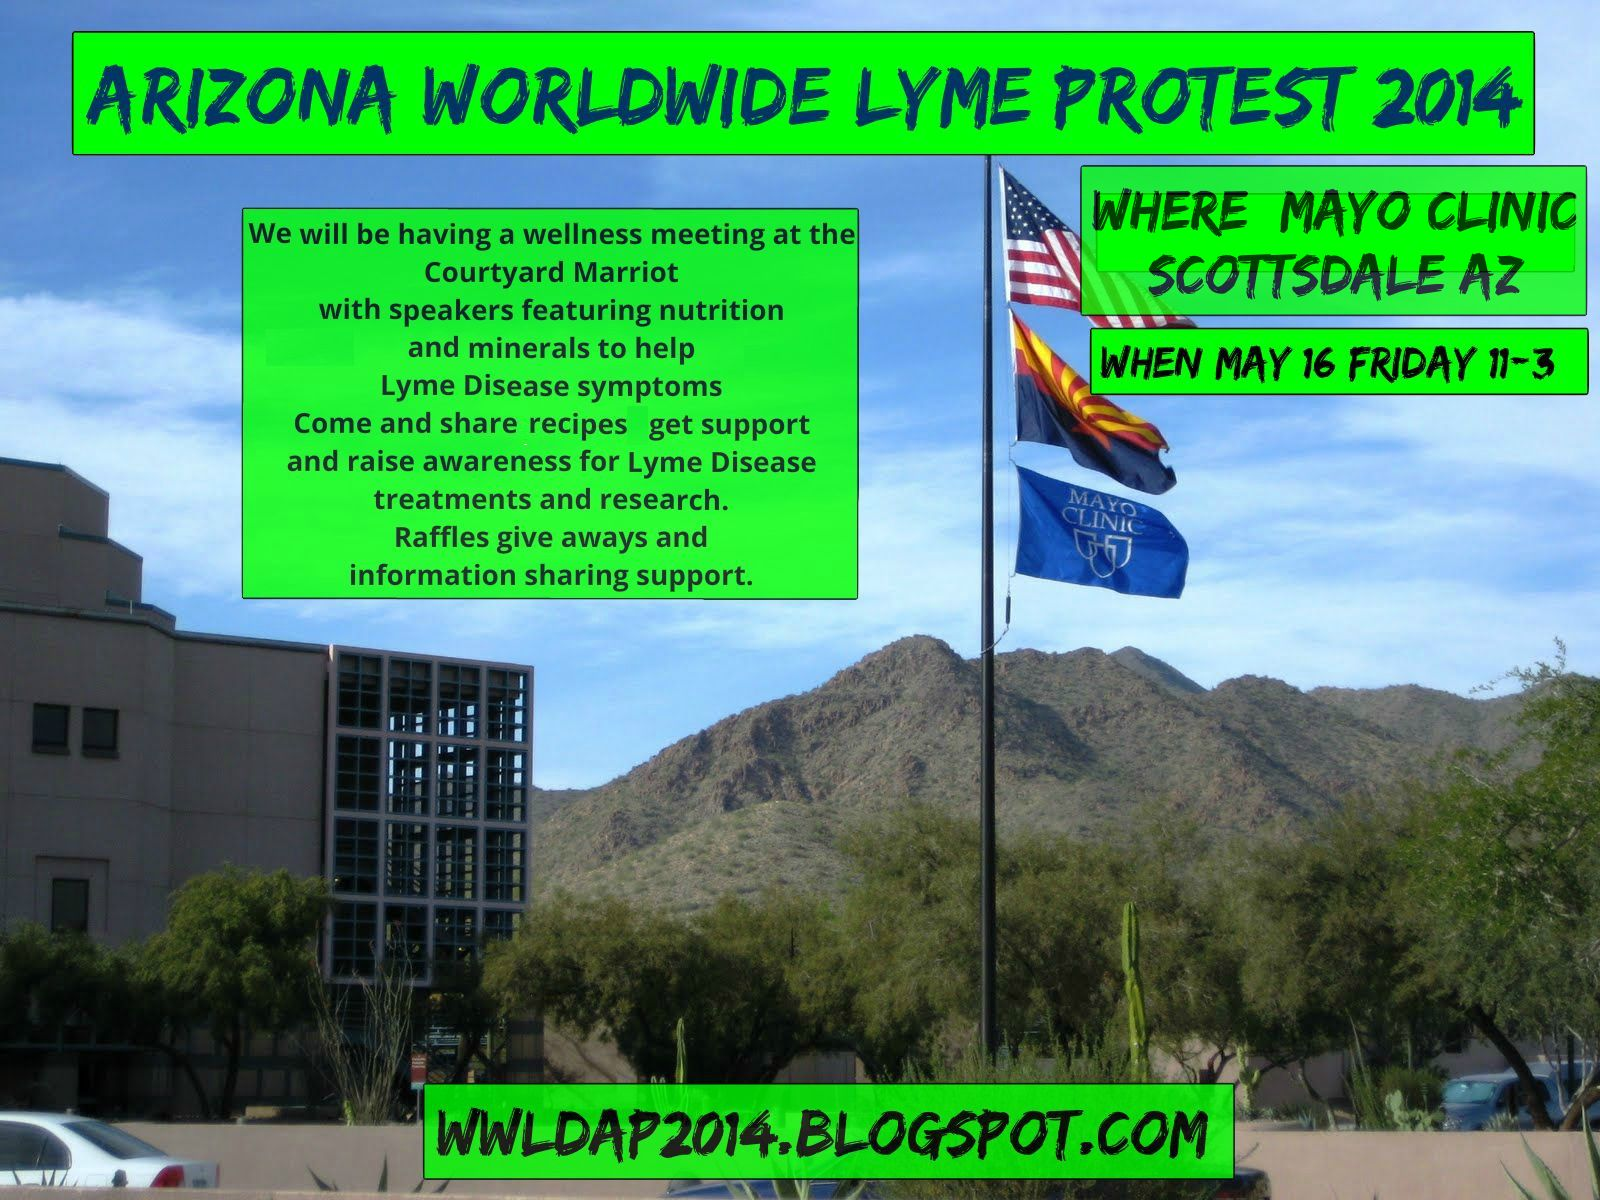 Worldwide Lyme Disease Awareness Protest 2014 Arizona39s